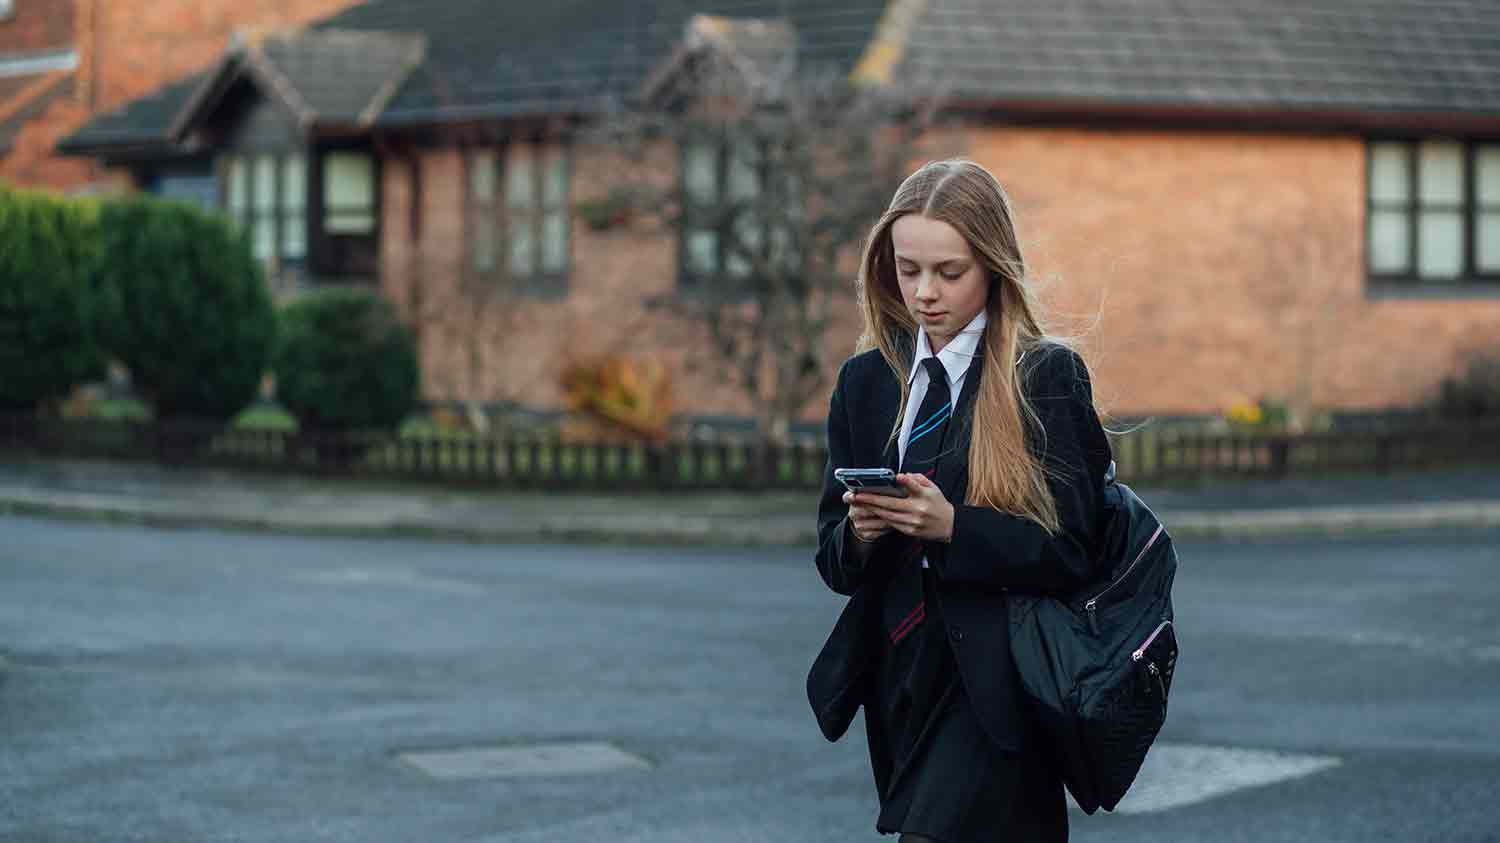 Teenage school girl walking in uniform across a road while scrolling on a mobile phone